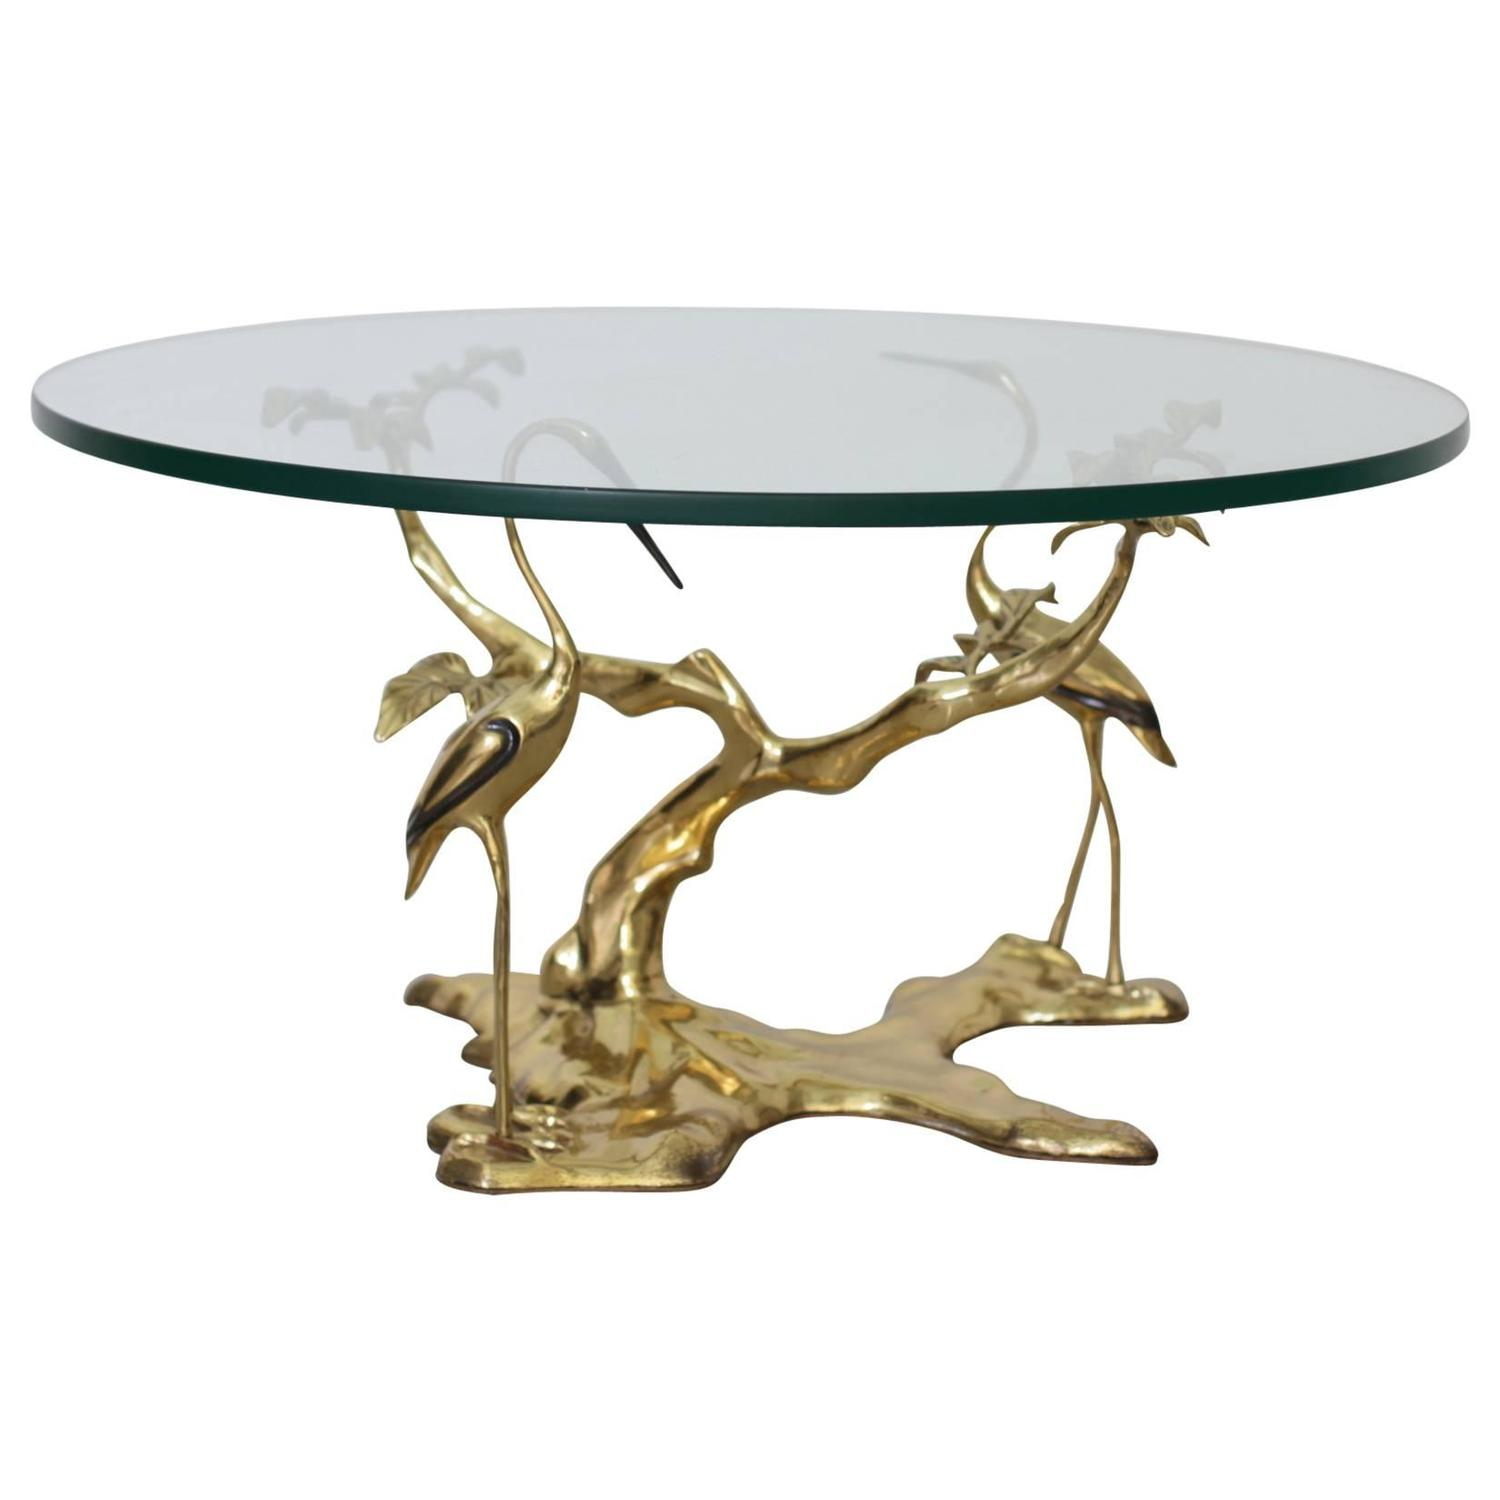 Crane Brass Cocktail or Coffee Table at 1stdibs